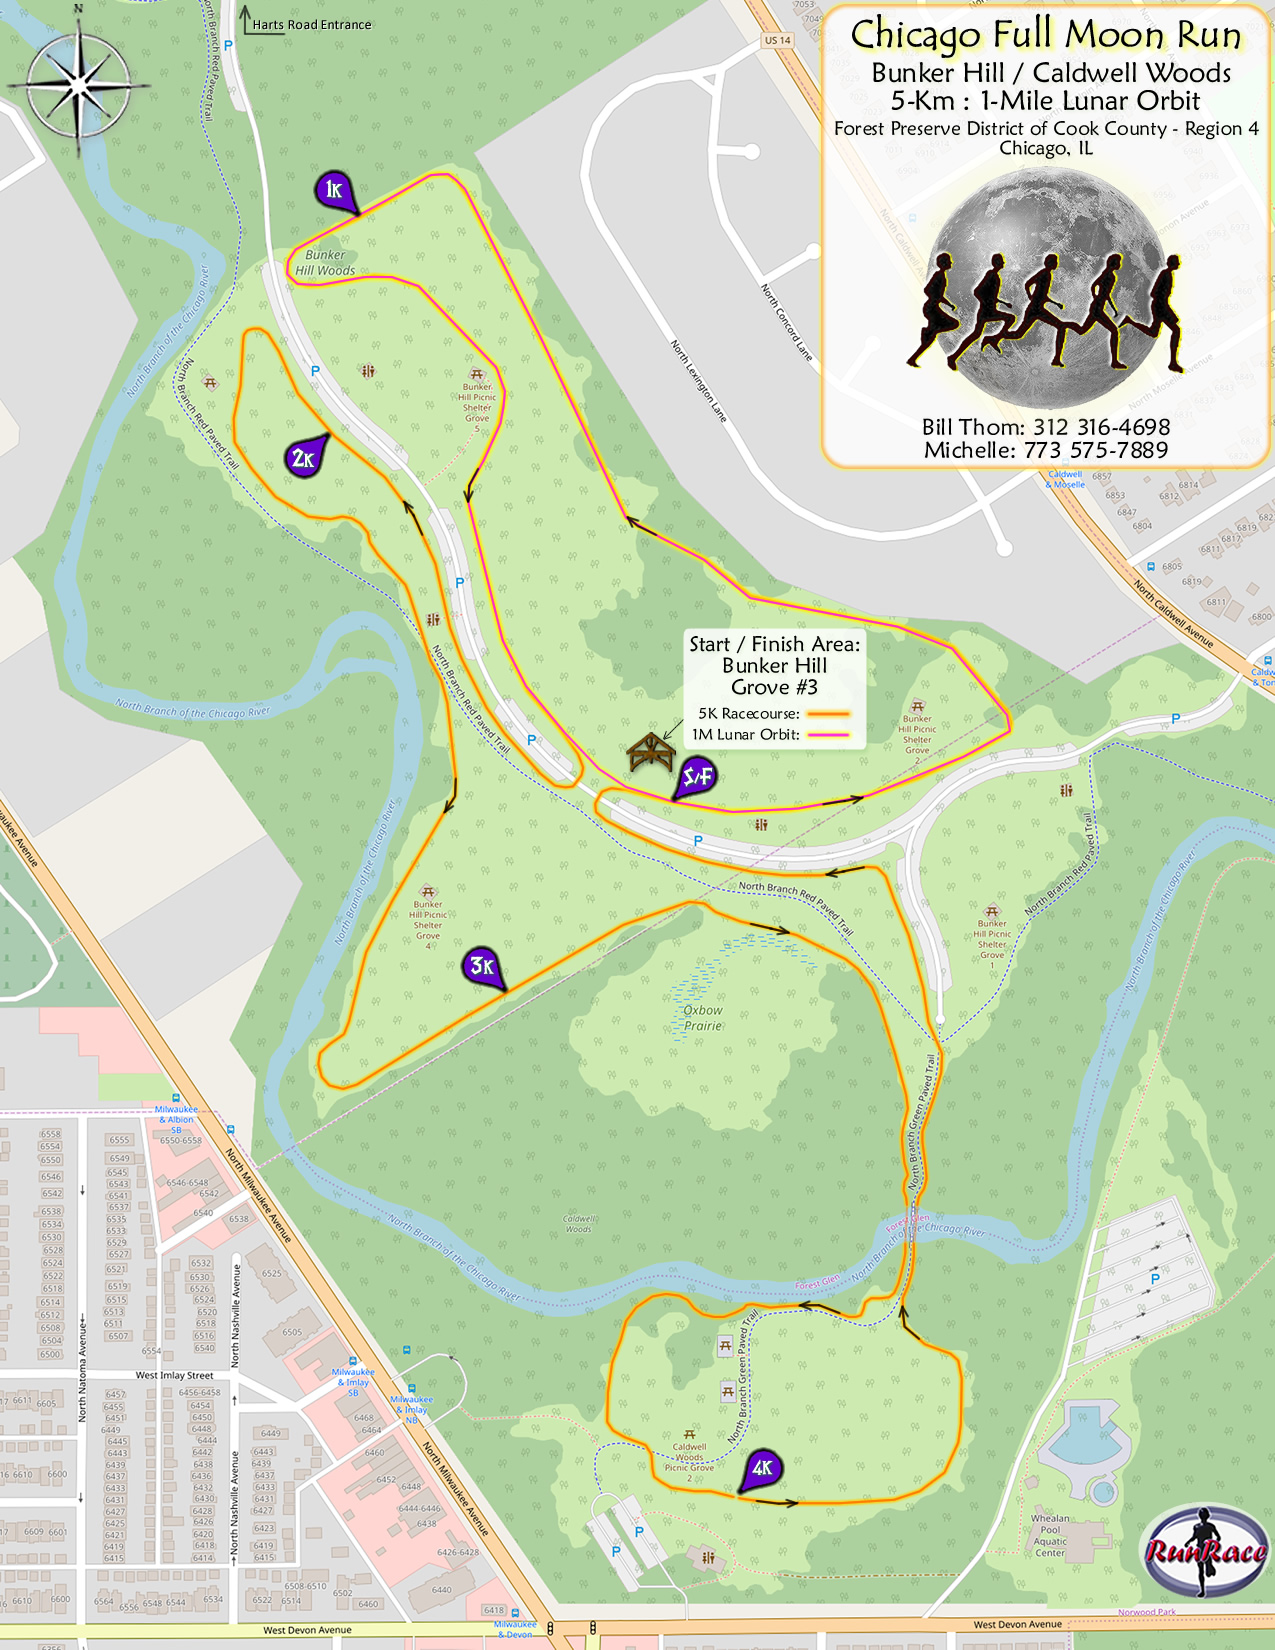 [racecourse map: 2020 Chicago Full Moon Run]